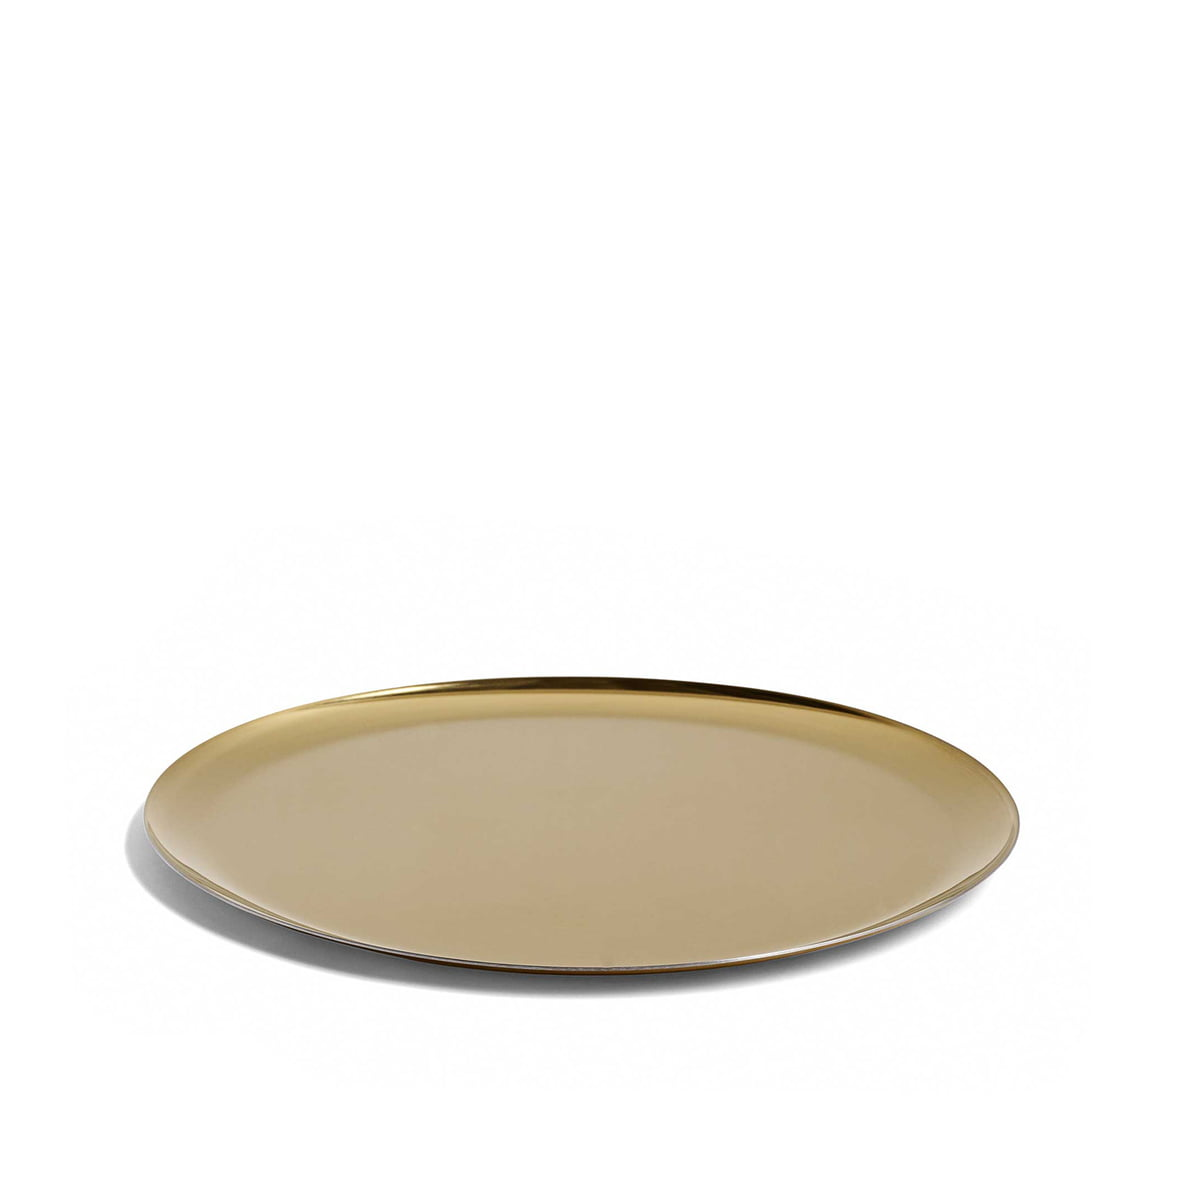 Serving Tray Von Hay Connox